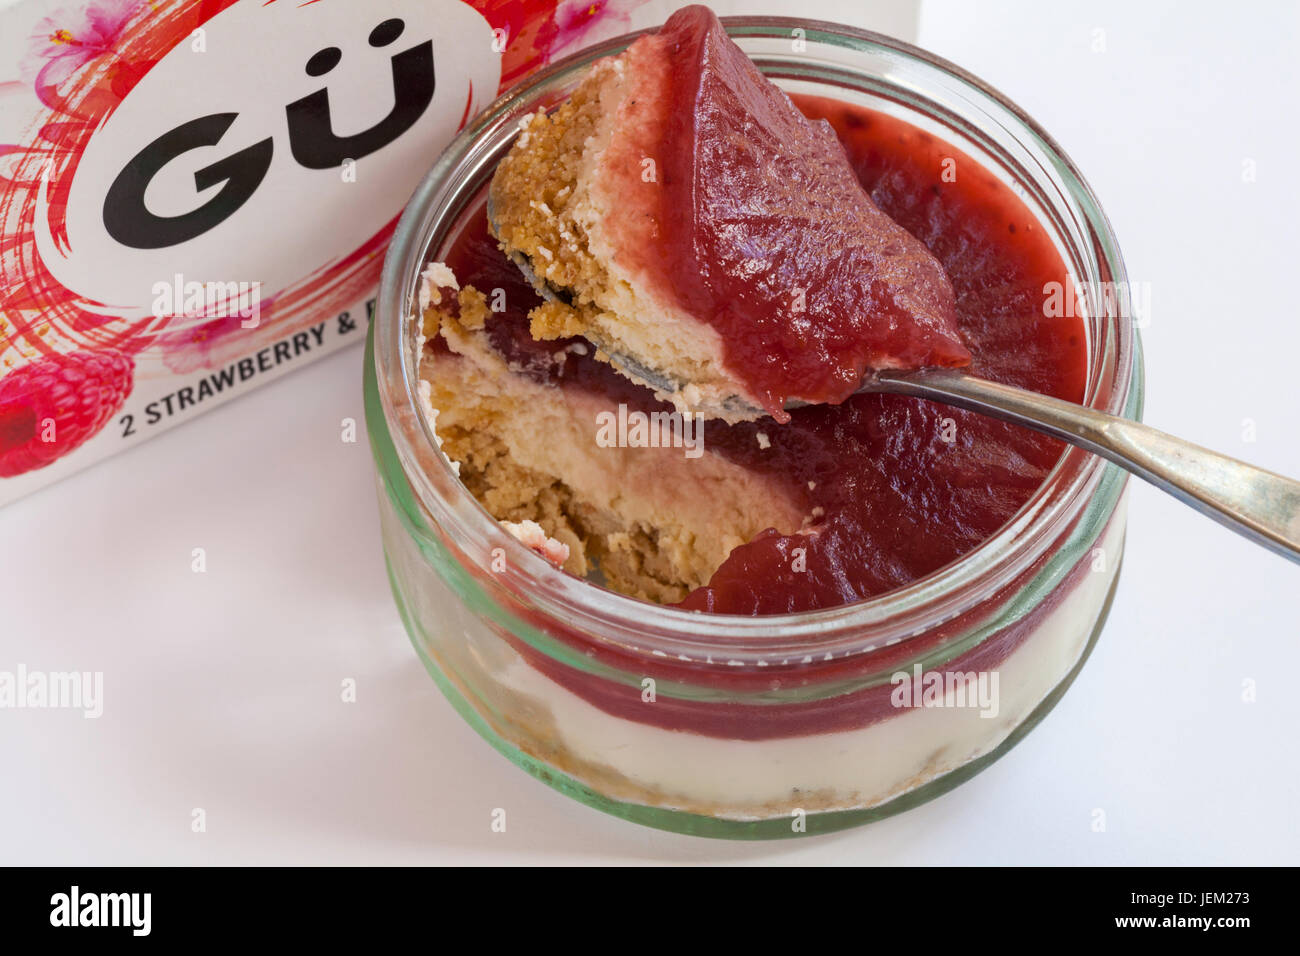 Gu strawberry & raspberry shortbread cheesecakes - ramekin removed from box and lid removed, with spoonful ready - Stock Image